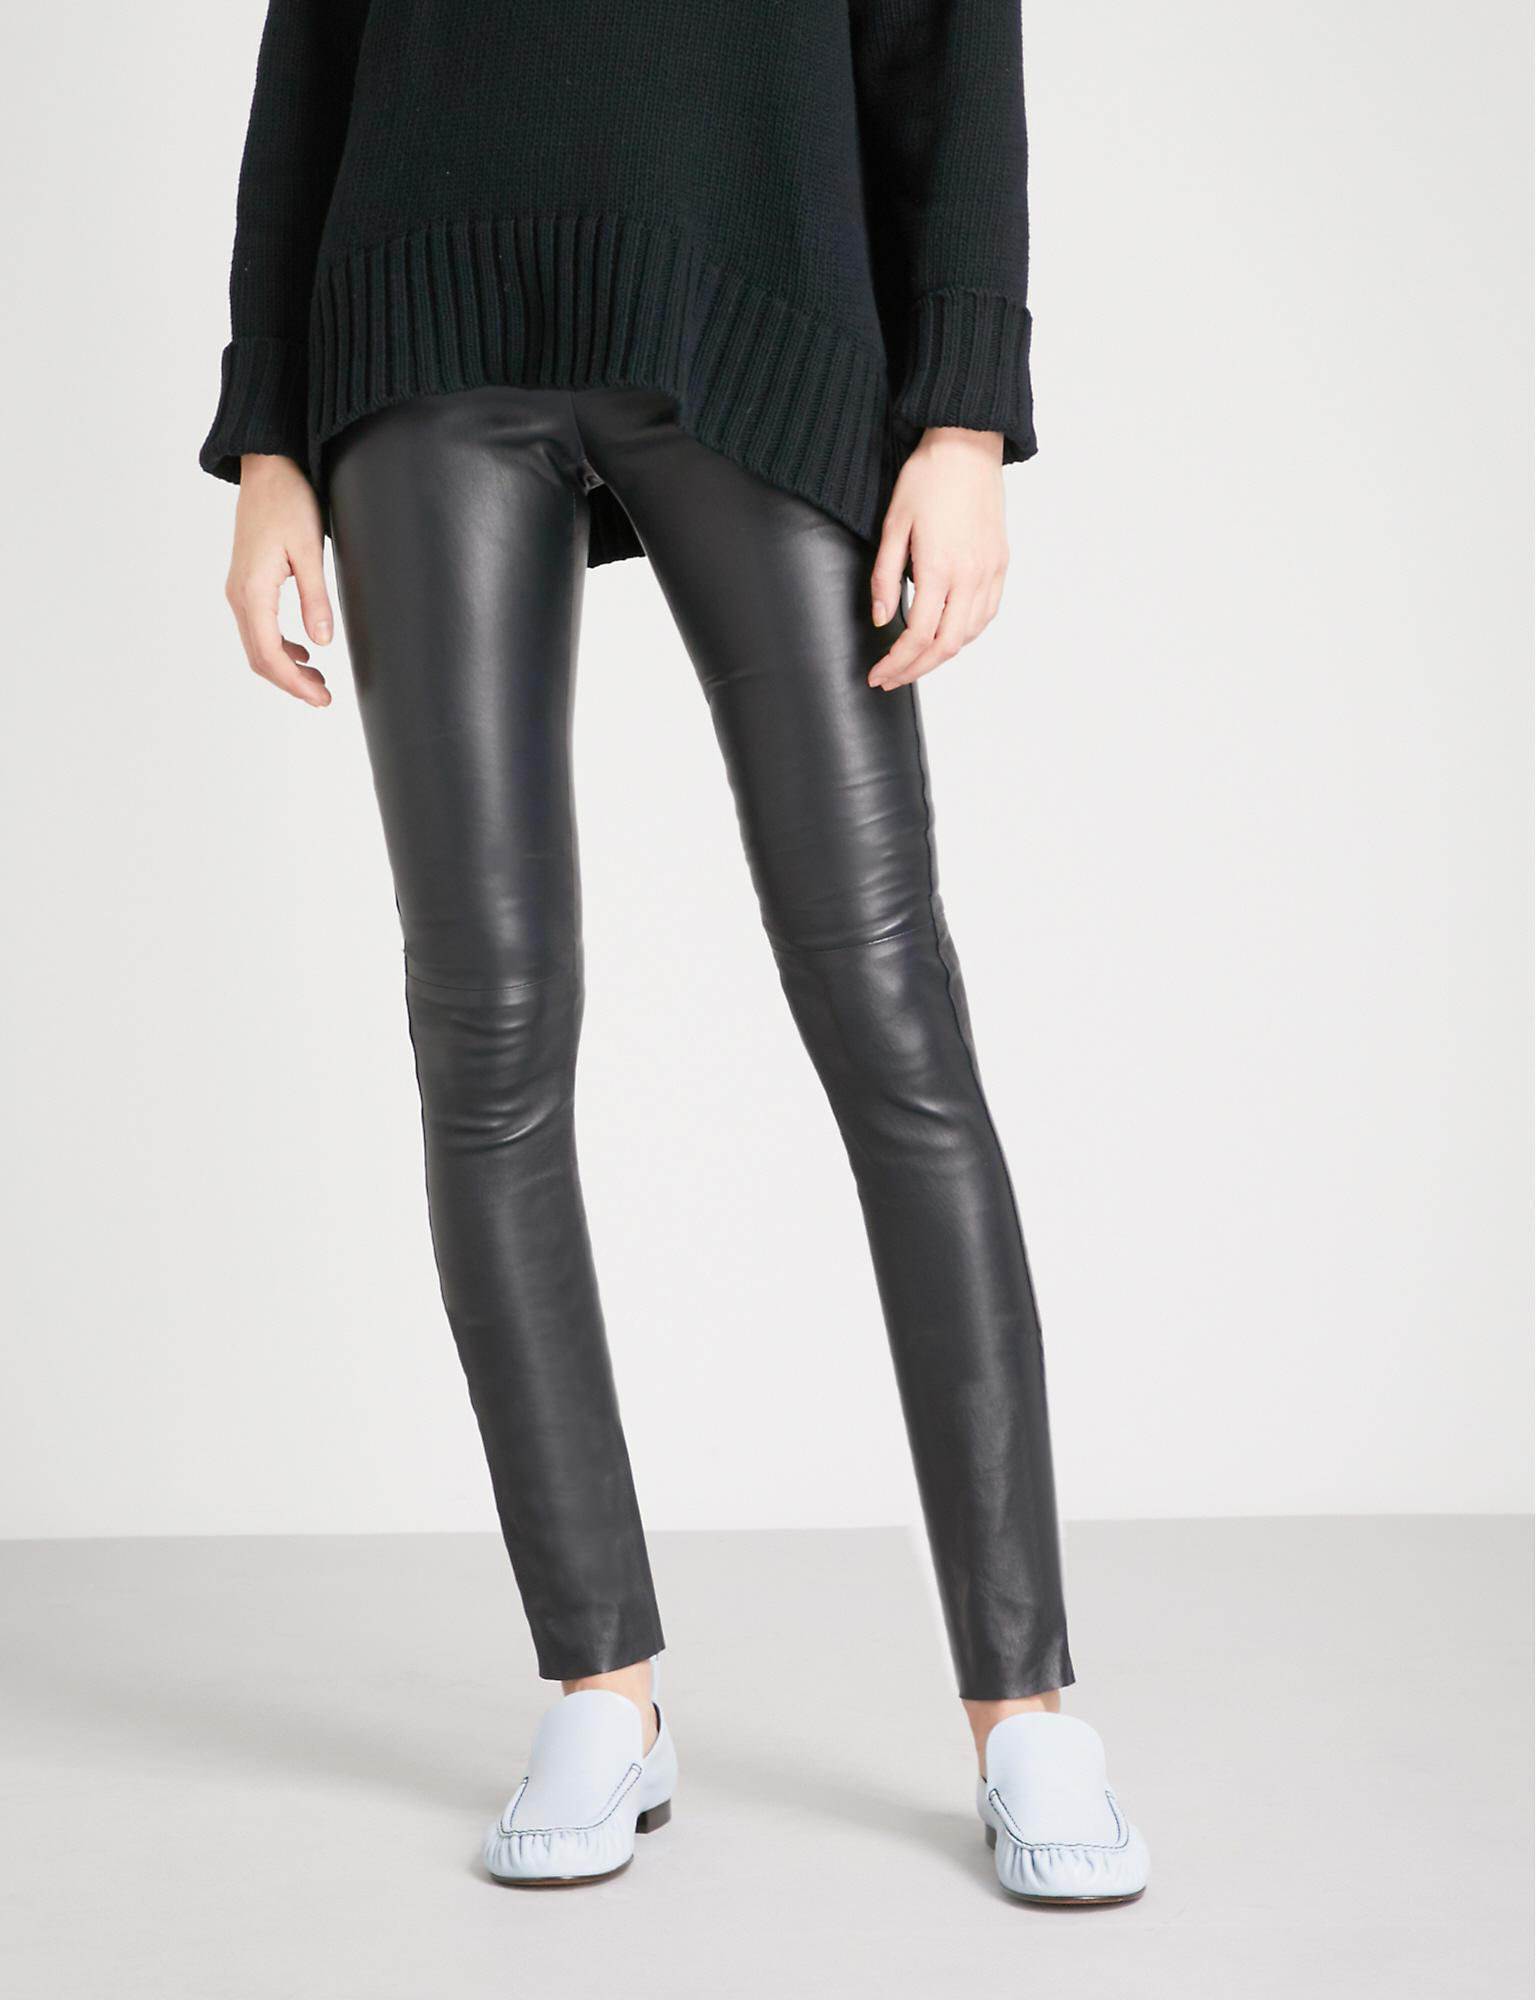 52b903a1c27088 Gallery. Previously sold at: Selfridges · Women's Leather Leggings